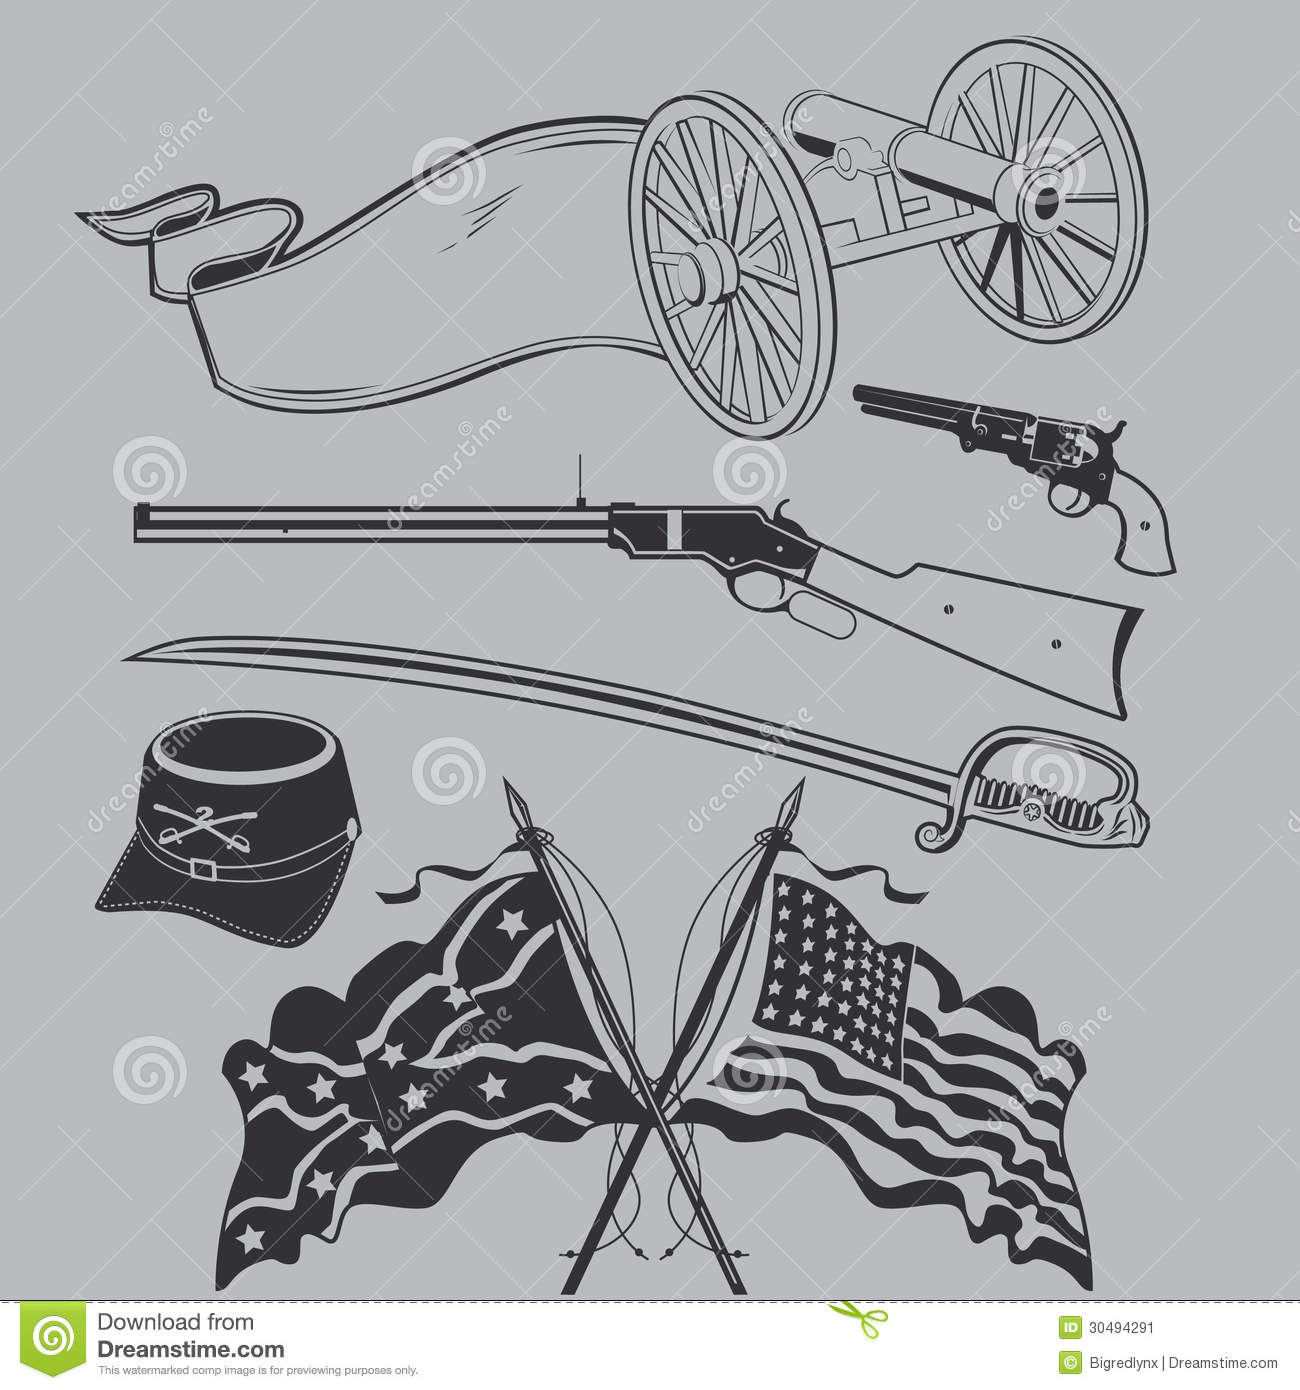 war weapons clipart - photo #10